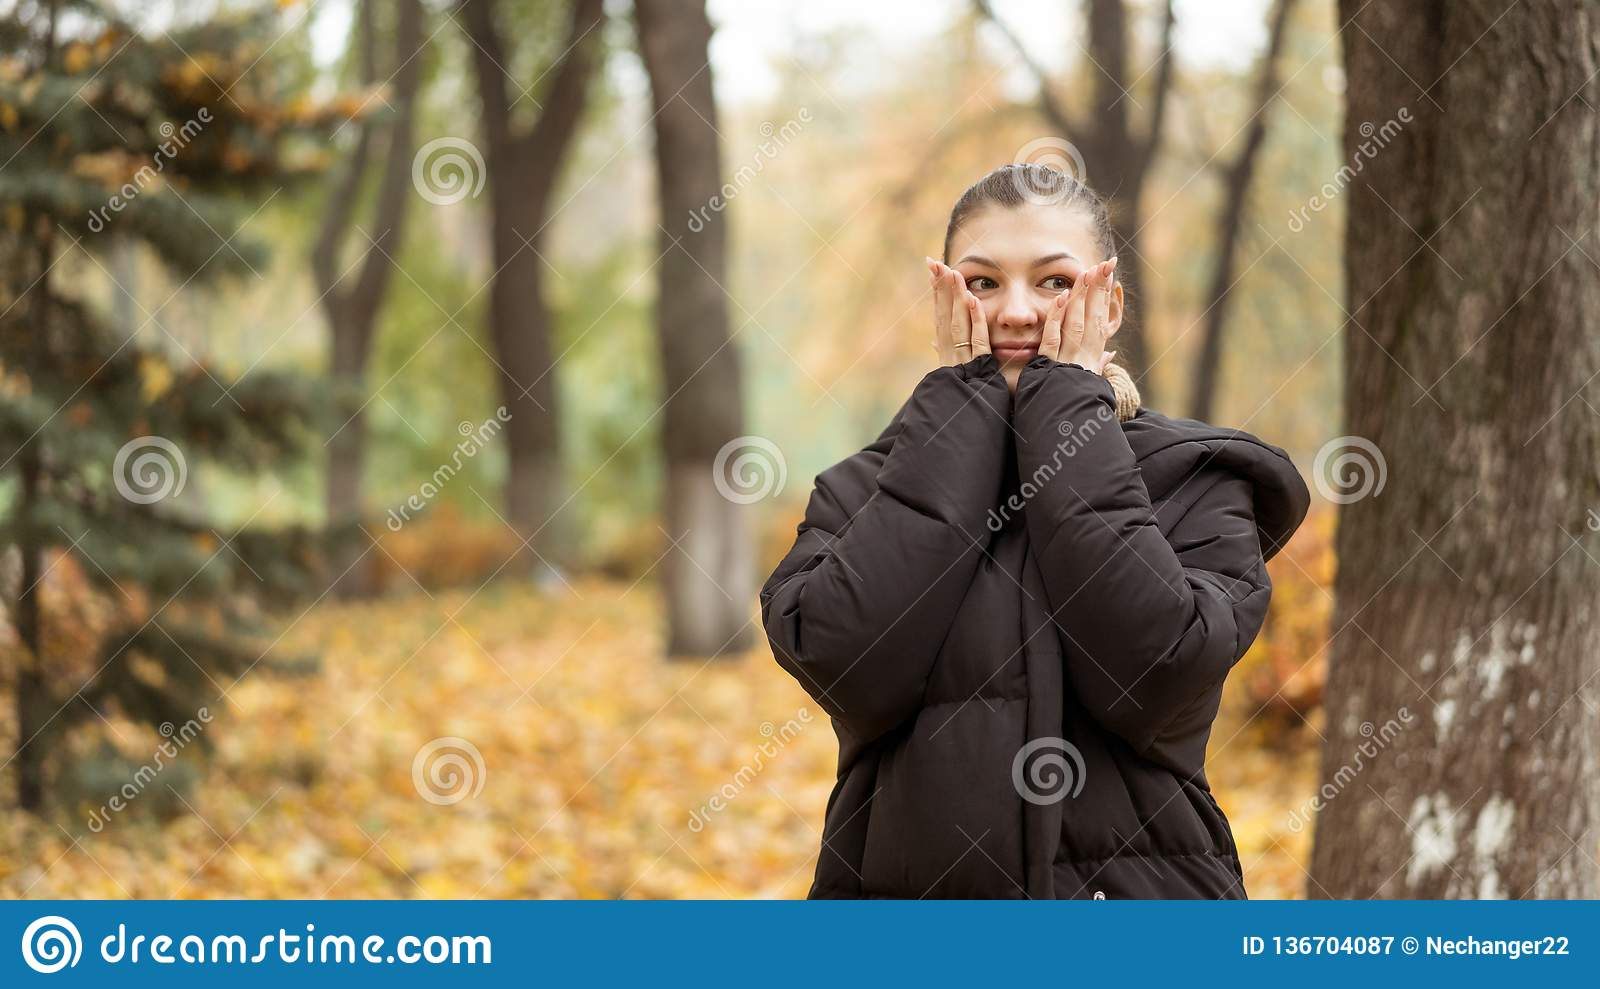 0a518dfe5ae Young beautiful girl in the autumn park in black jacket standing near a  tree and cover her face with hands. Trees and leaves on background. Autumn  concept